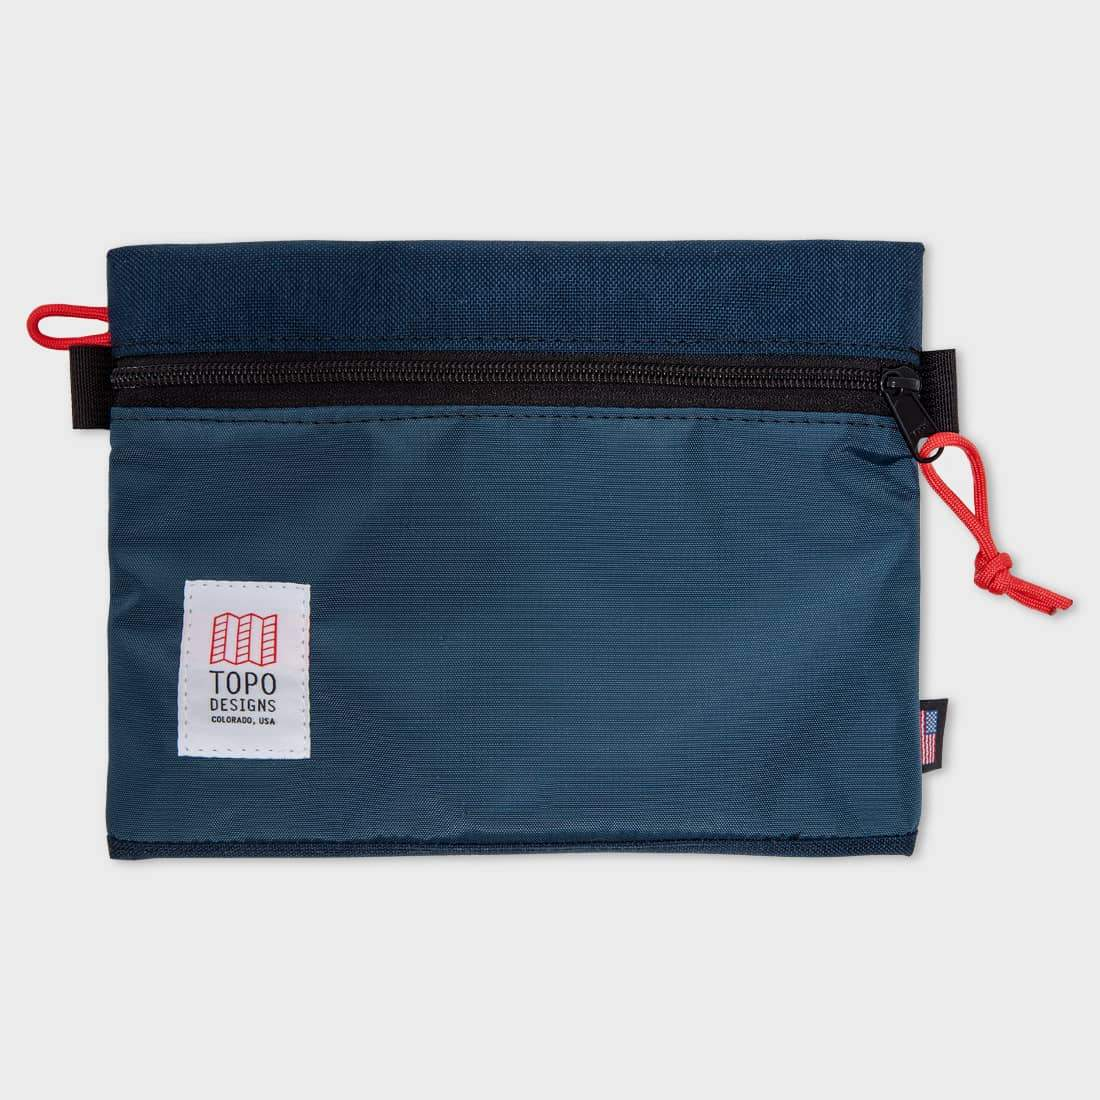 Topo Designs Accessory Bag Medium Navy